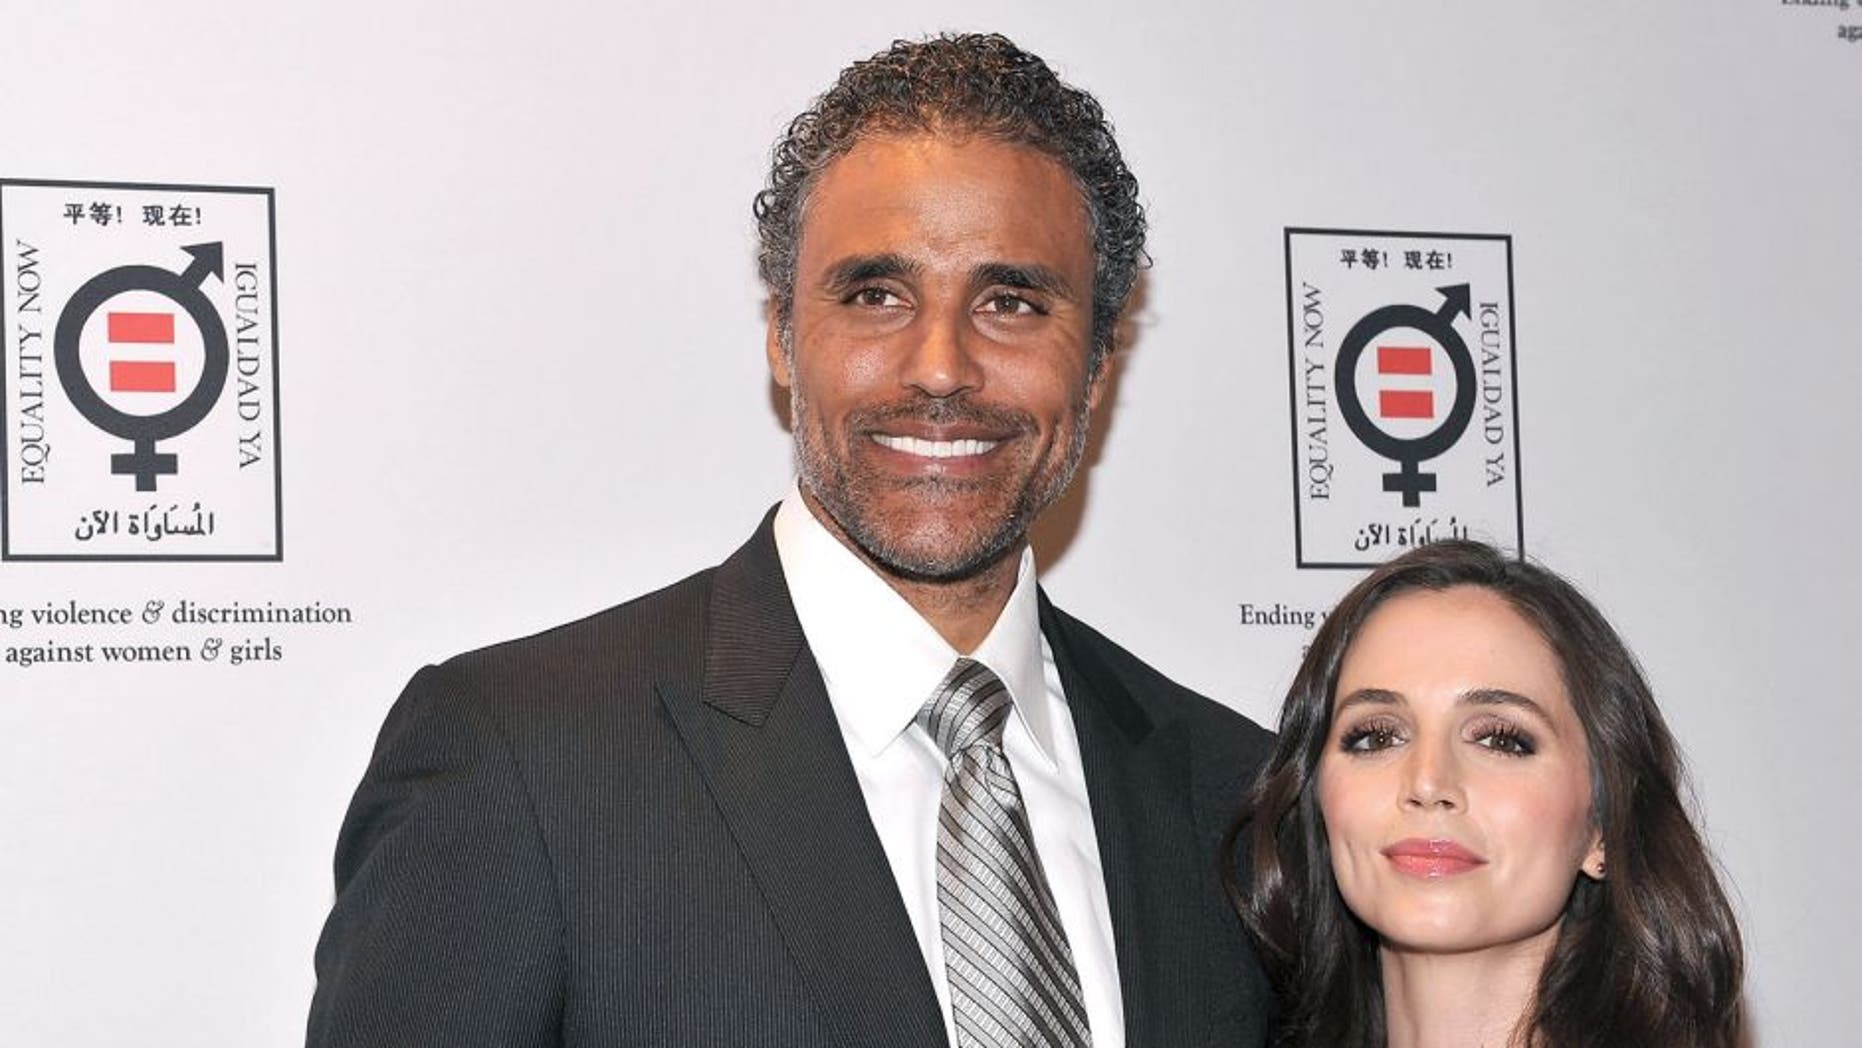 NEW YORK, NY - APRIL 19: Rick Fox and actress Eliza Dushku (R) attend the Equality Now 20th Anniversary Fundraiser Event at Asia Society on April 19, 2012 in New York City. (Photo by Fernando Leon/Getty Images)